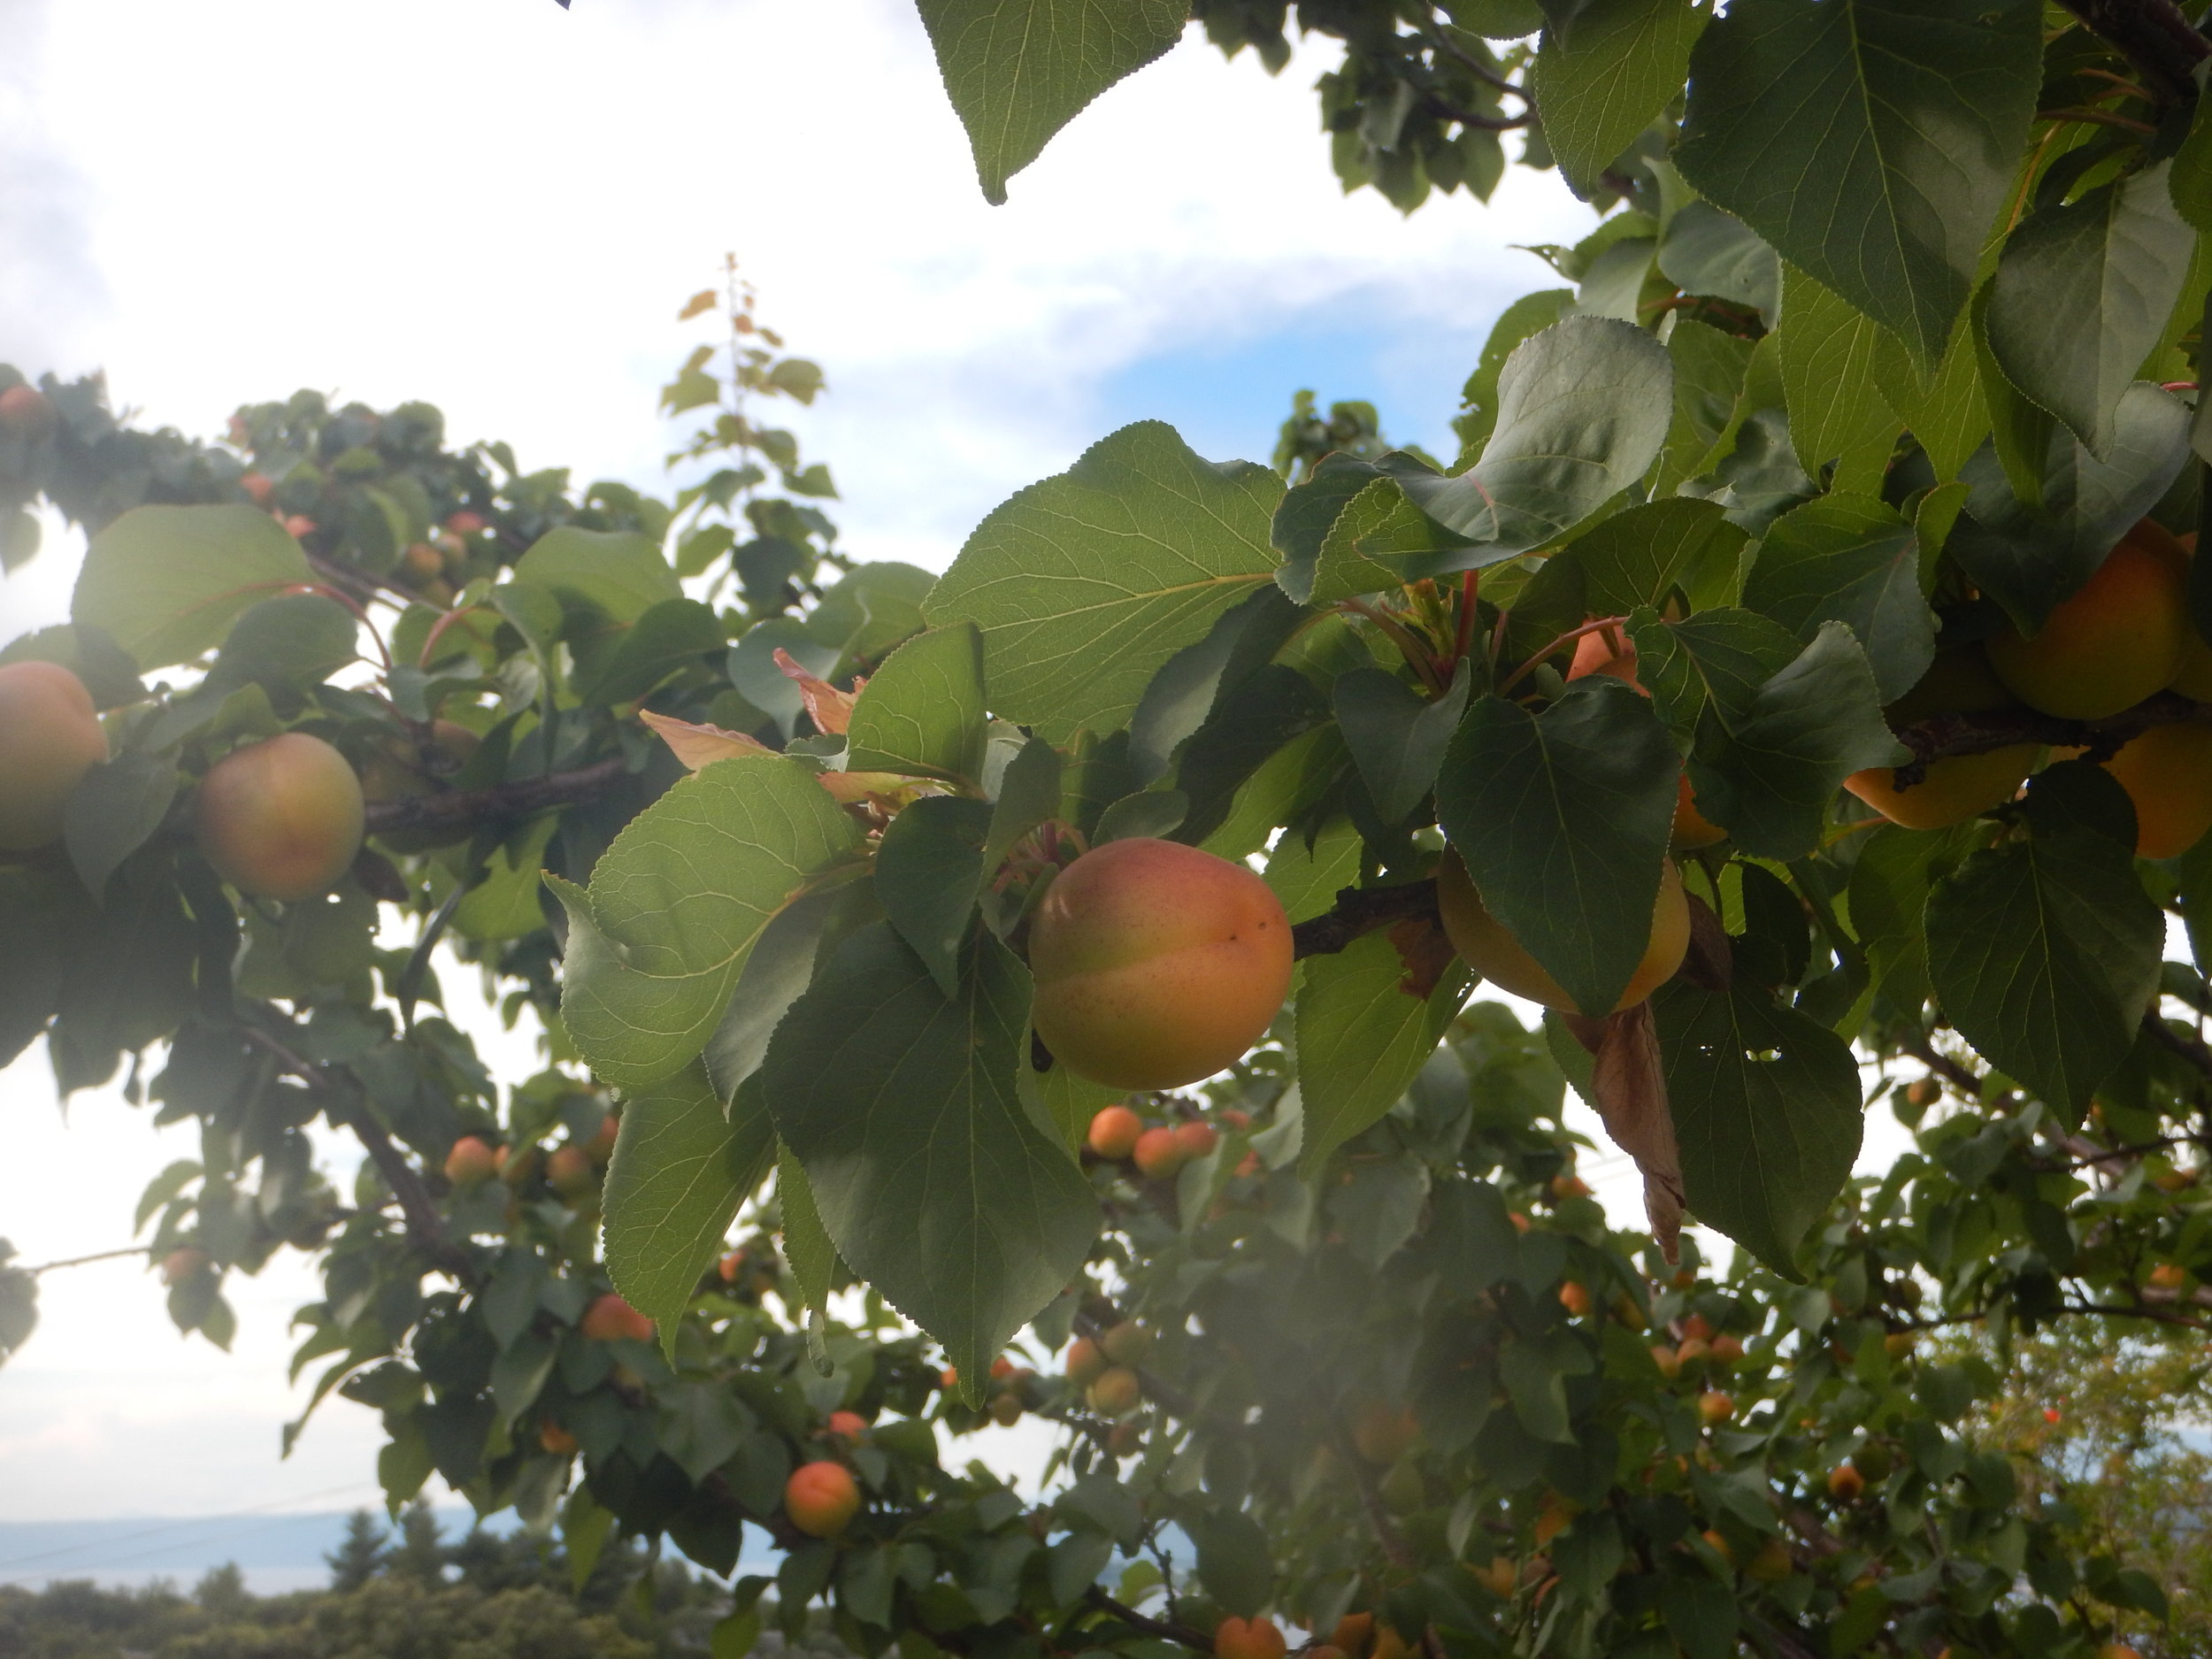 Apricot, ready in a few days. They smell magnificent.